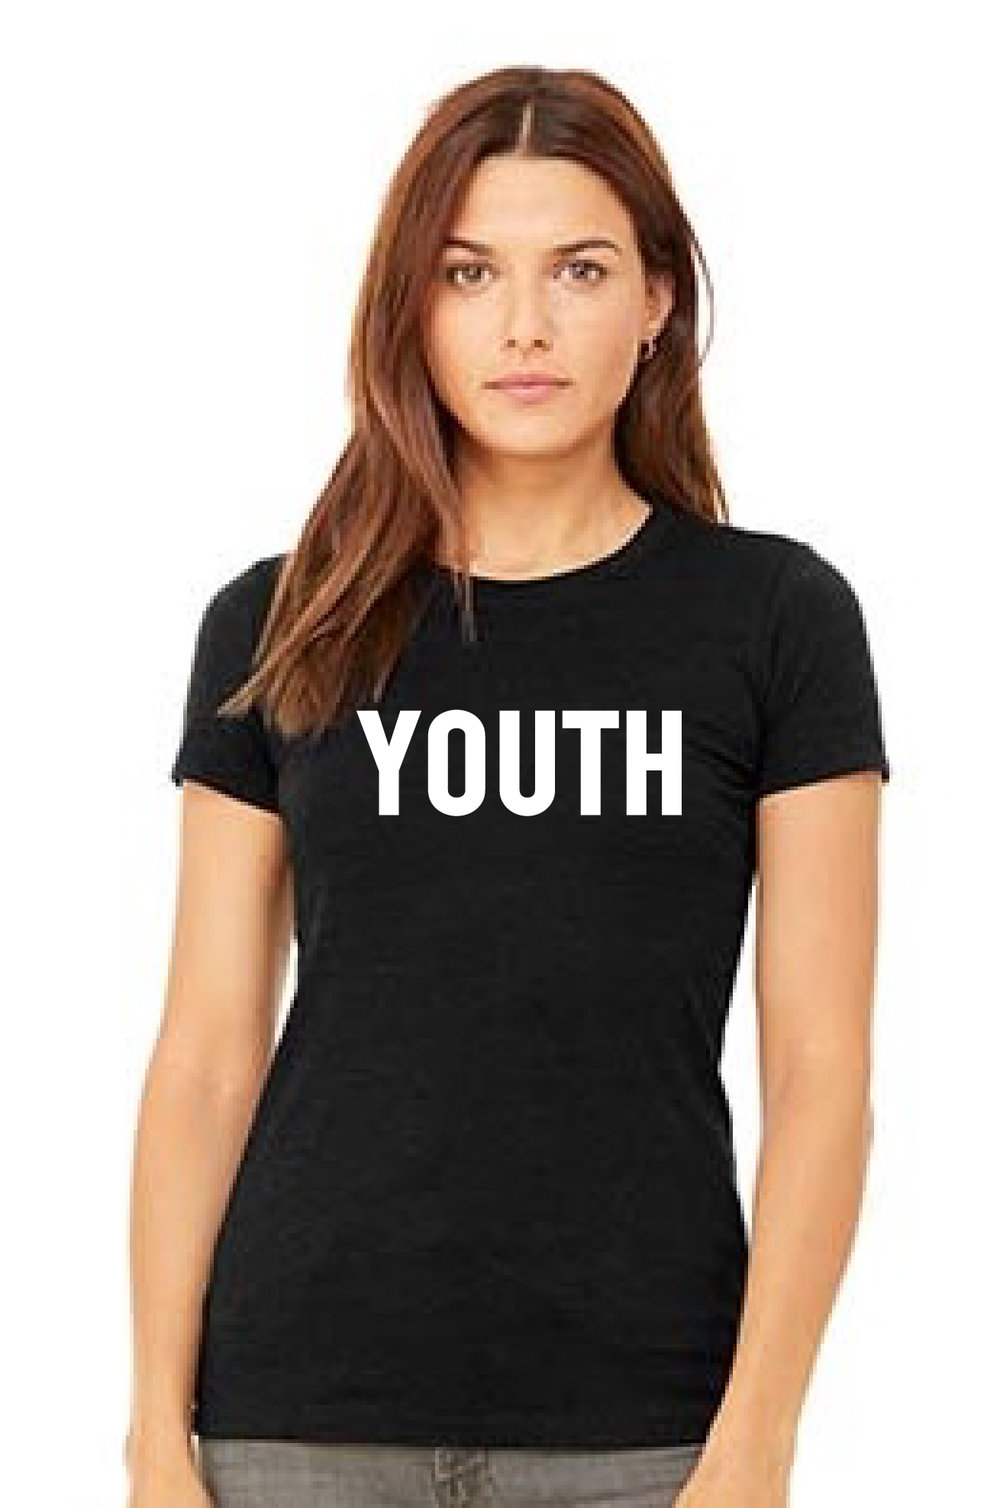 Bella Canvas Favorite T in 100% cotton. white YOUTH Print. Starting at $ 19.95. BUY ON AMAZON NOW. https://www.amazon.com/dp/B07D6WZ3DY